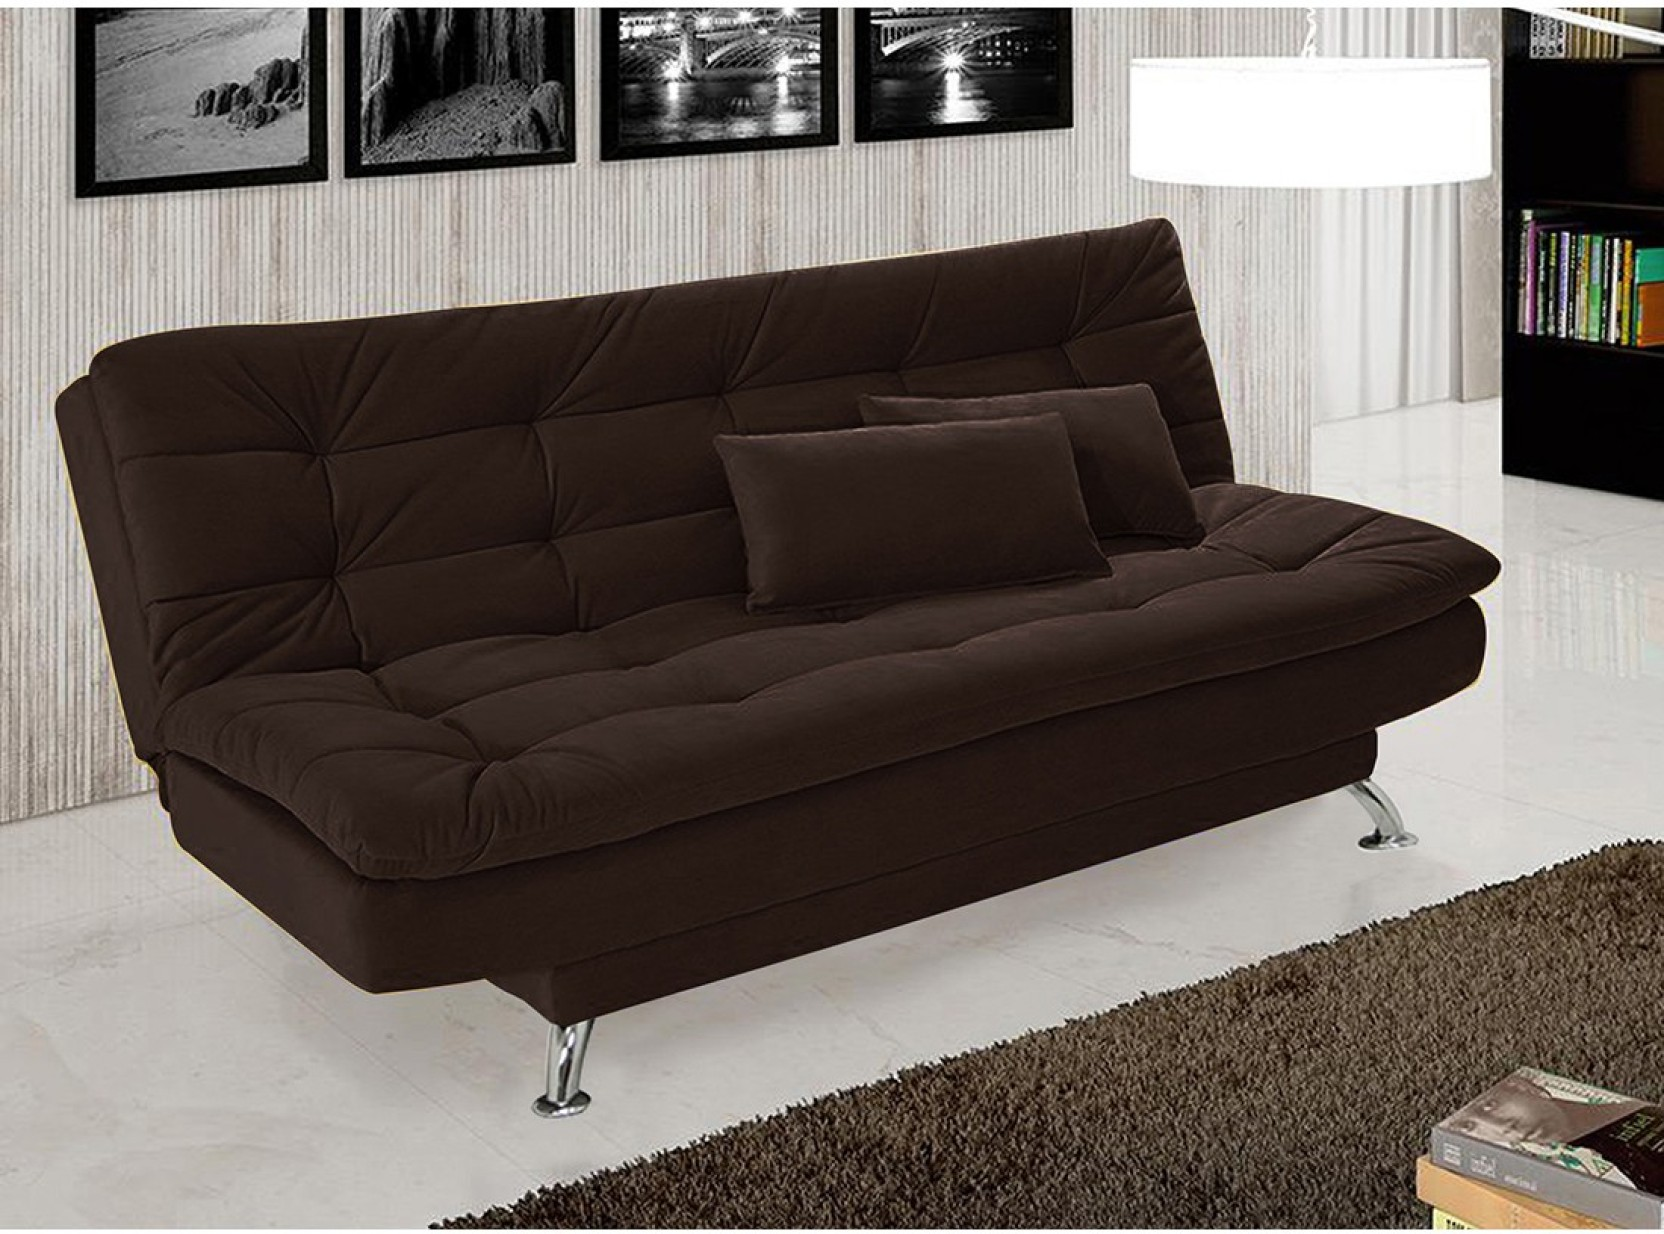 Furny supersoft double solid wood sofa bed price in india for Sofa bed price in india